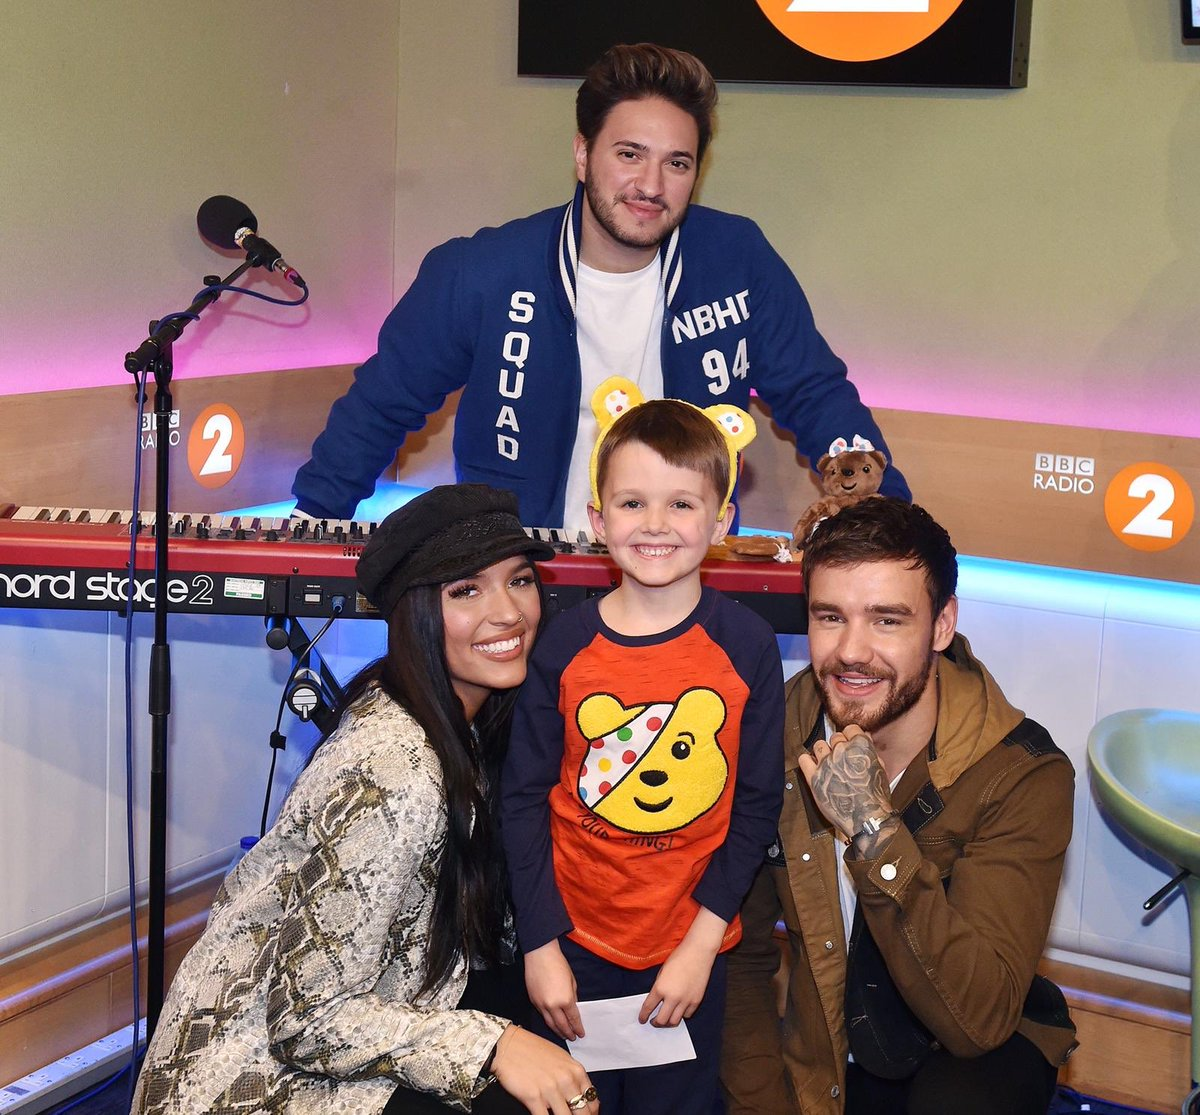 Excited to be on @BBCCiN tonight with @JonasBlue and @lennonstella #CiN